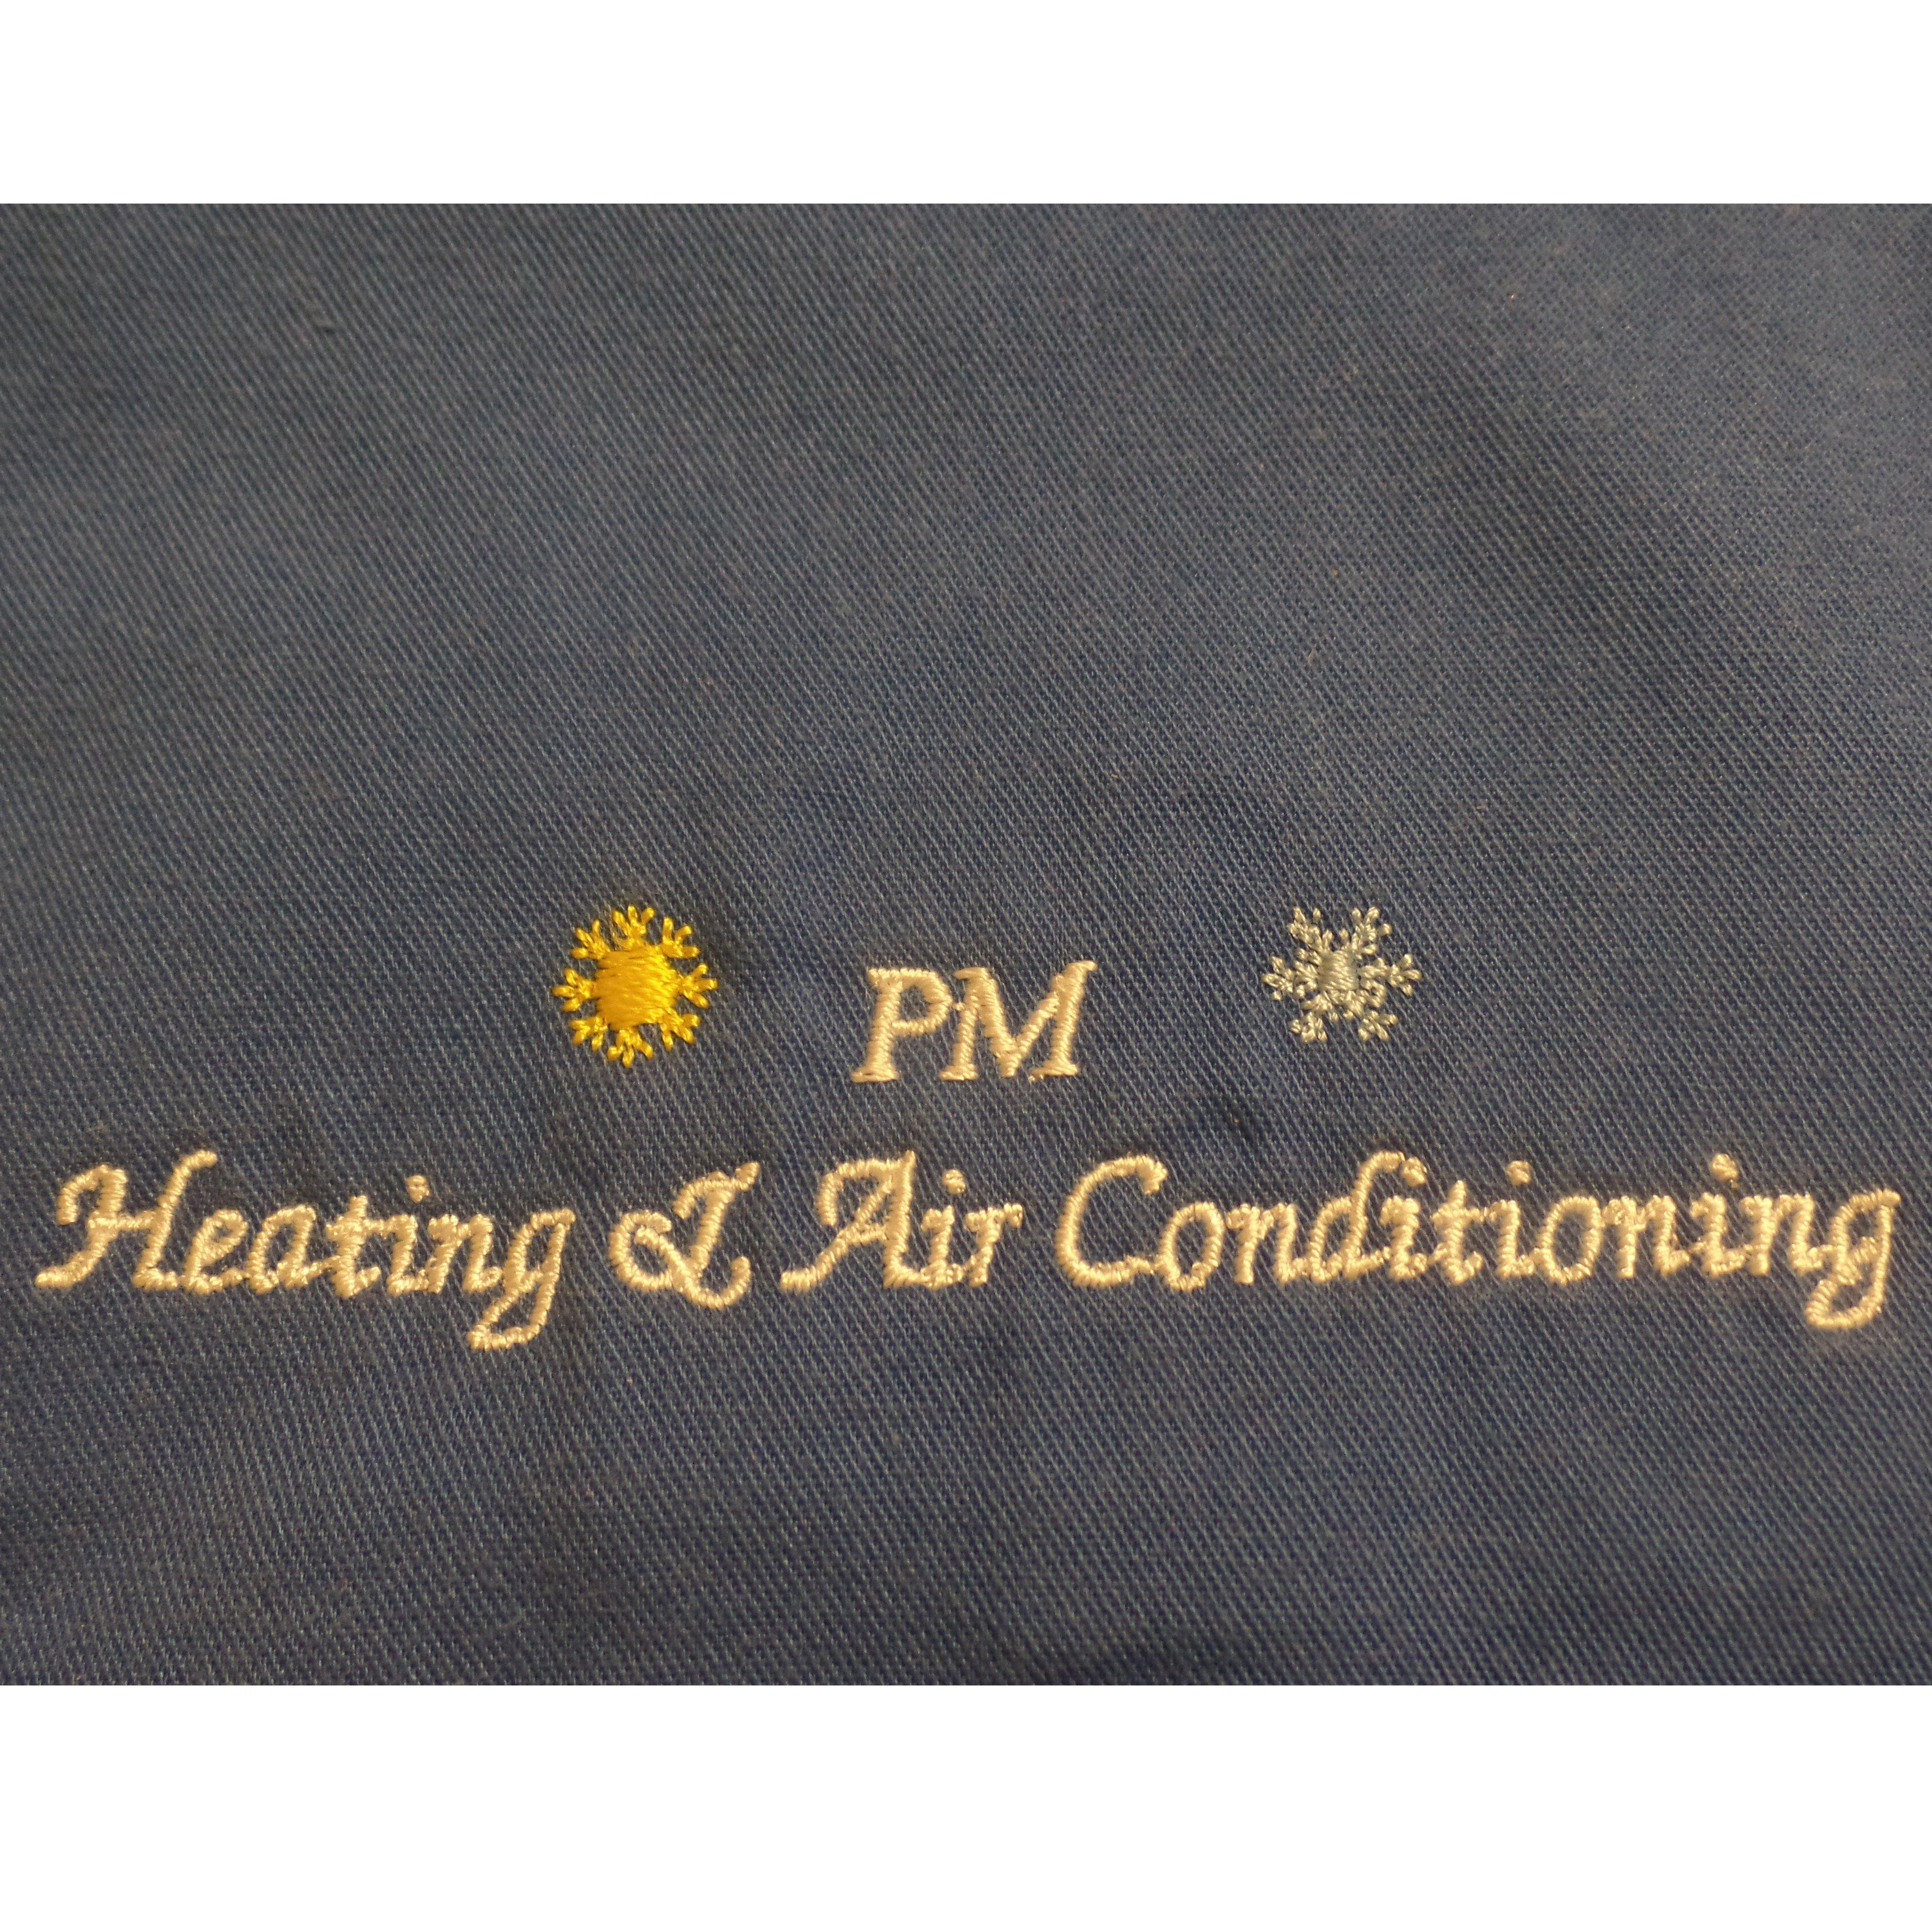 PM Heating & Air Conditioning LLC